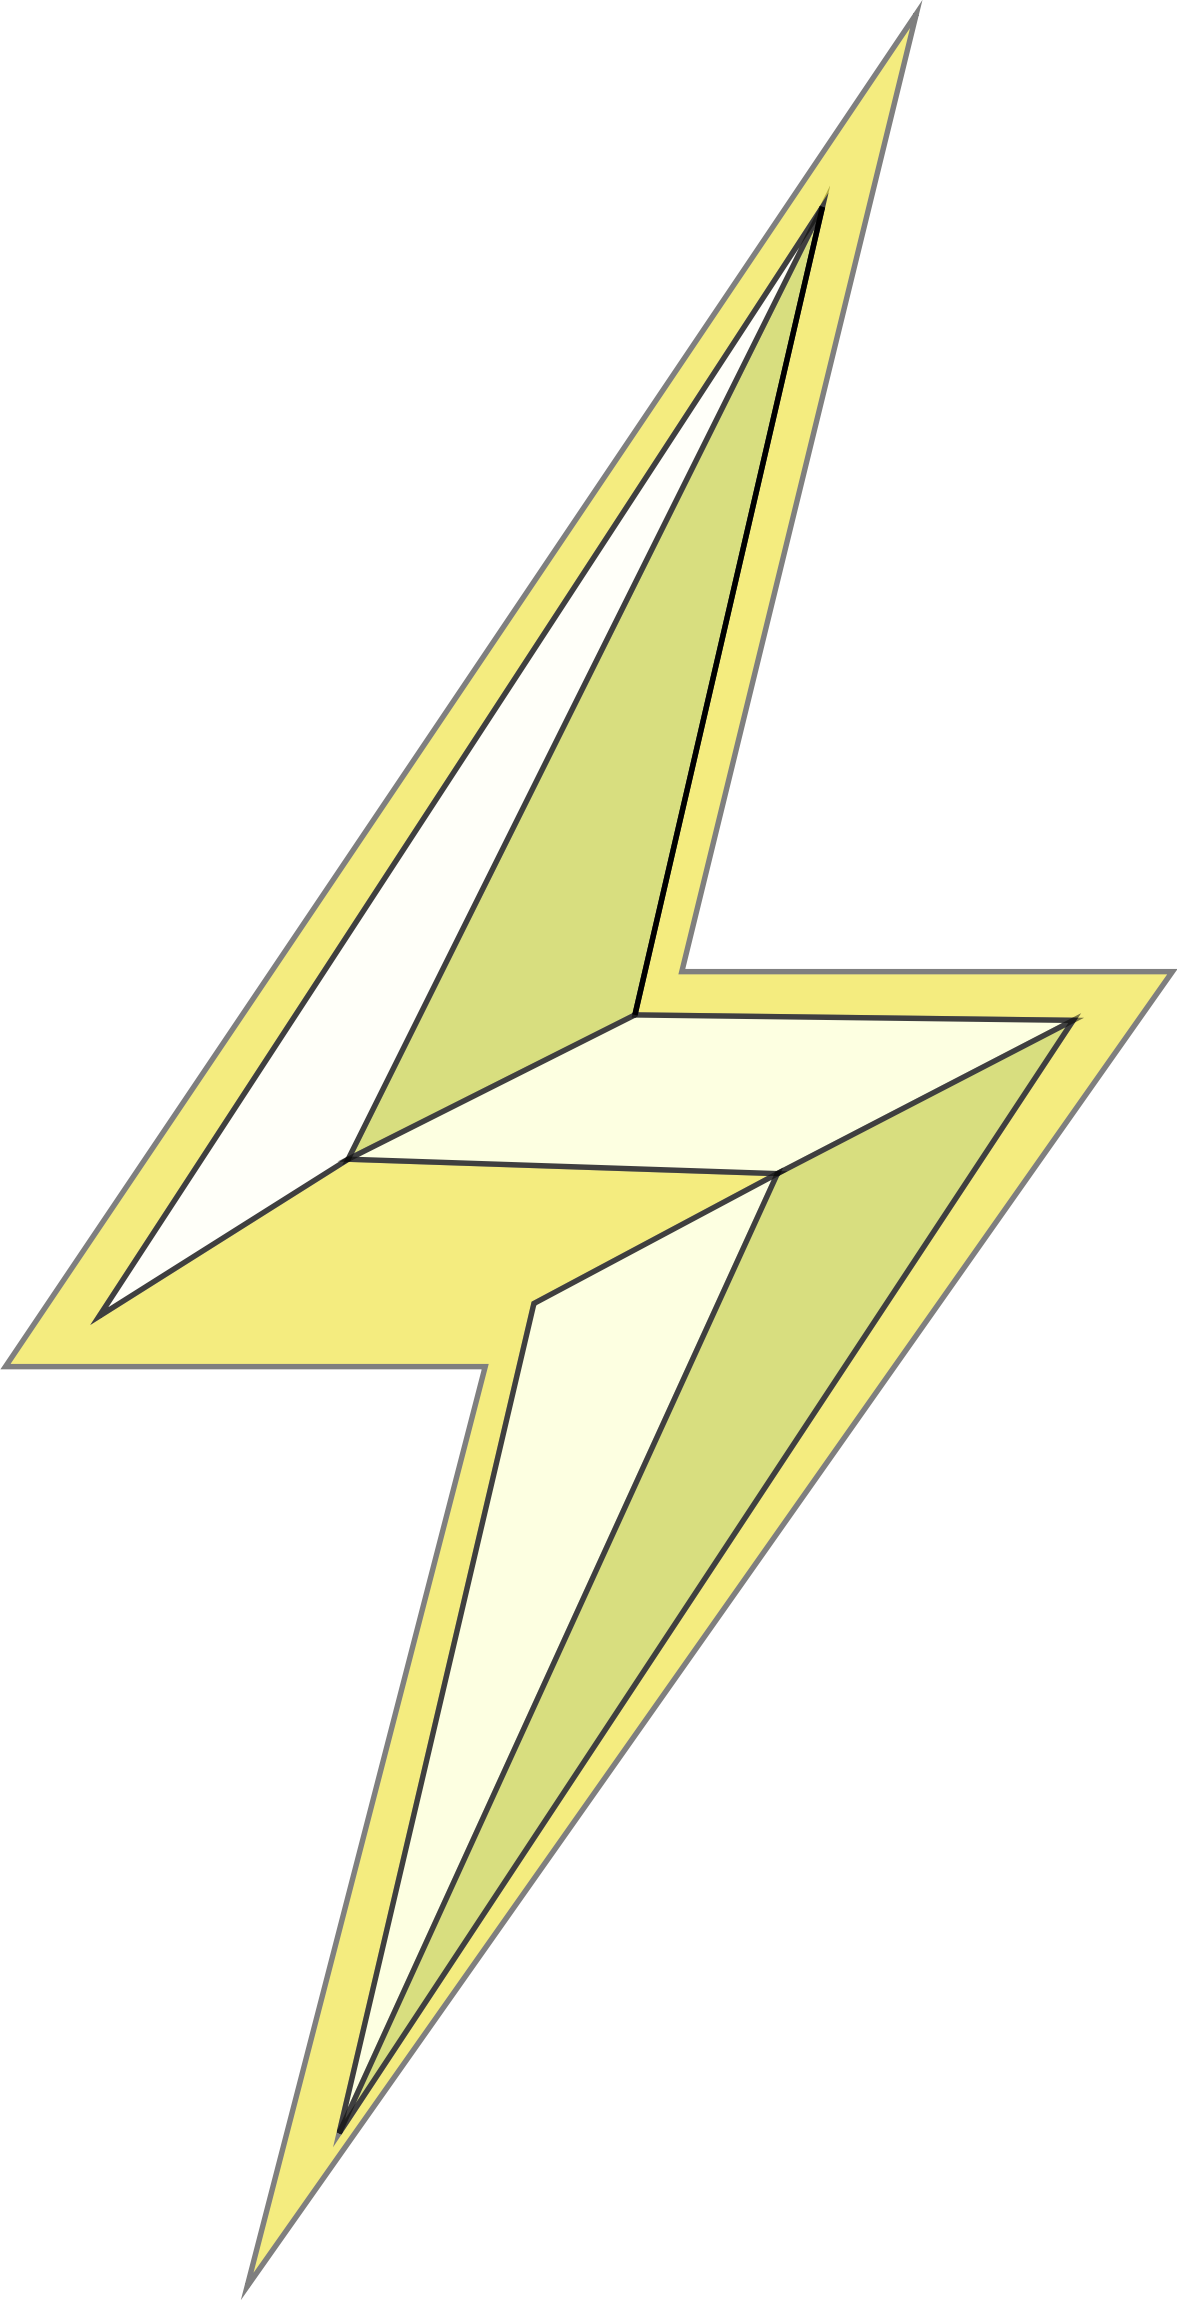 Stylized Lightning Bolt by GDJ